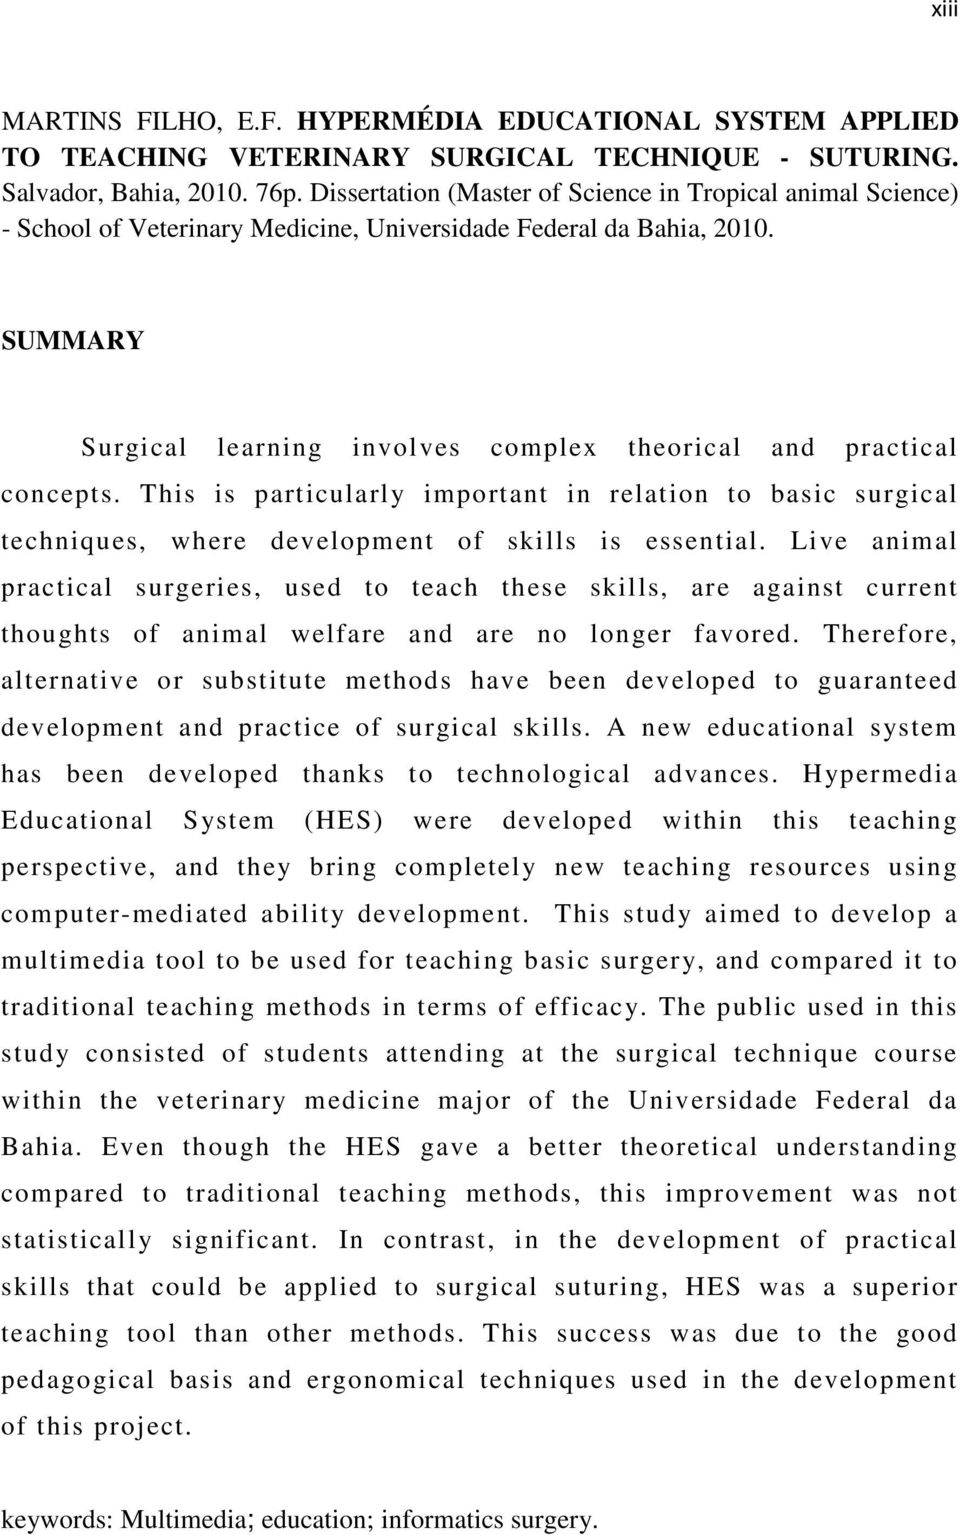 SUMMARY Surgical learning involves complex theorical and practical concepts. This is particularly important in relation to basic surgical techniques, where development of skills is essential.